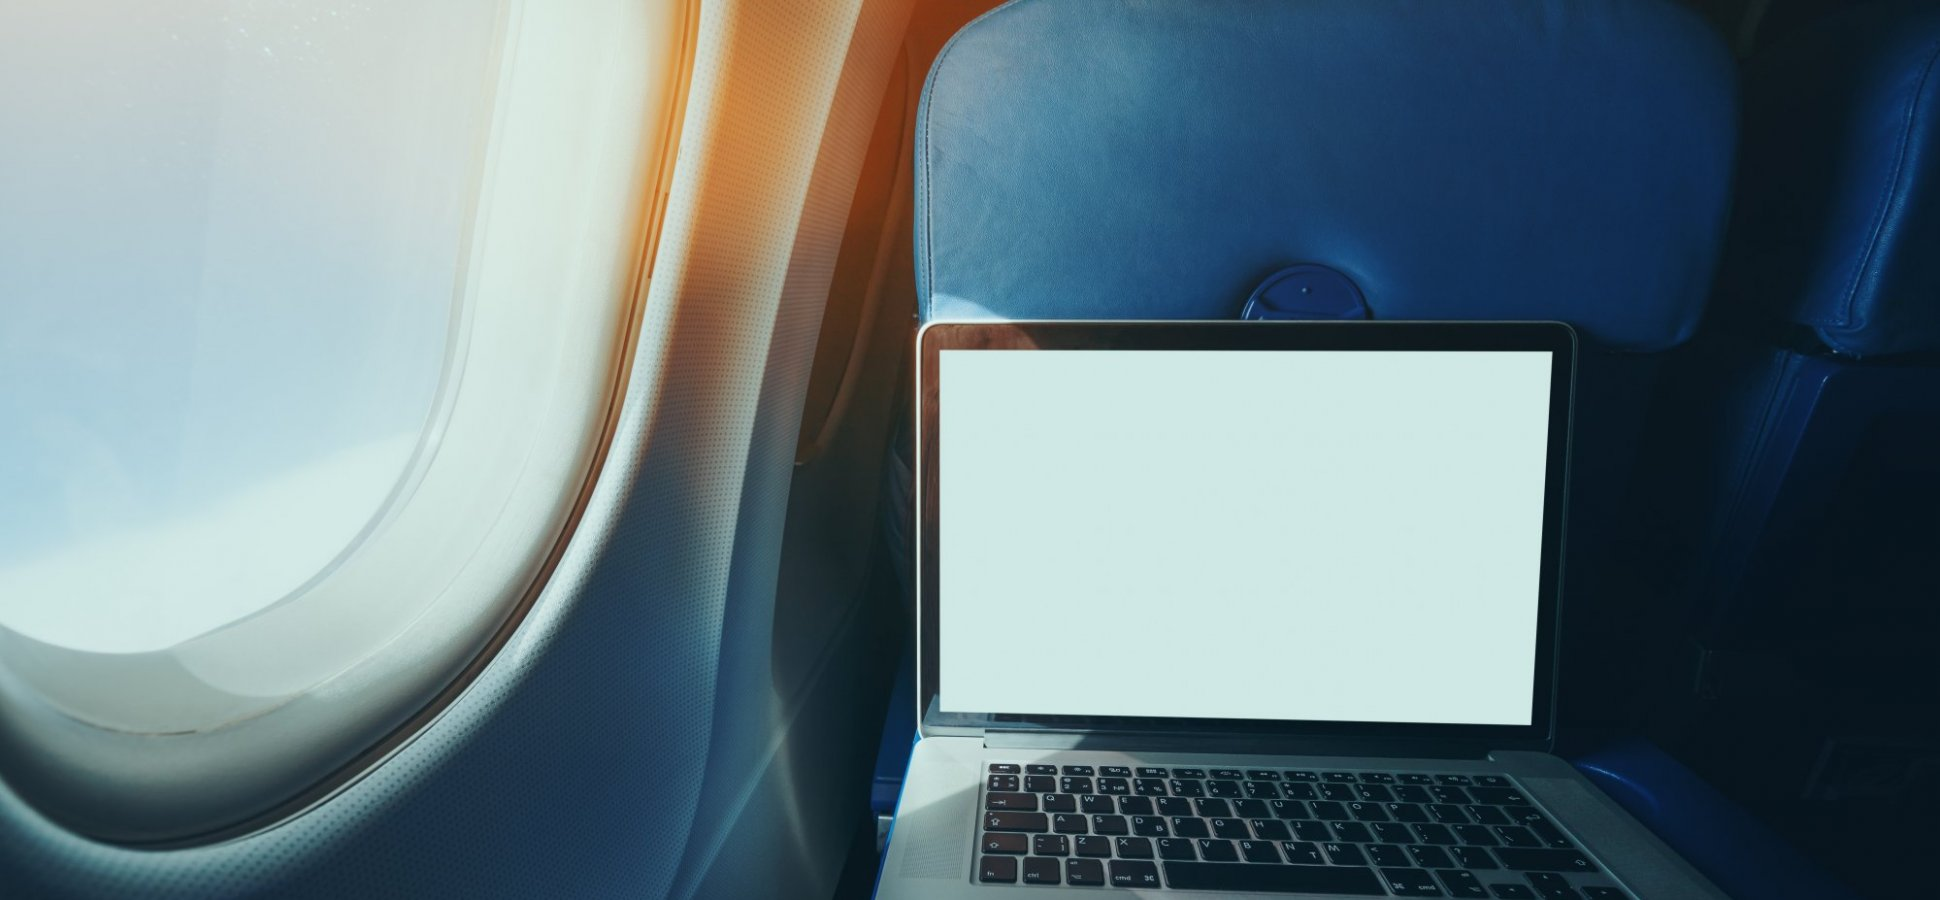 If You Need Solid Inflight WiFi, Choose One of These 4 Airlines